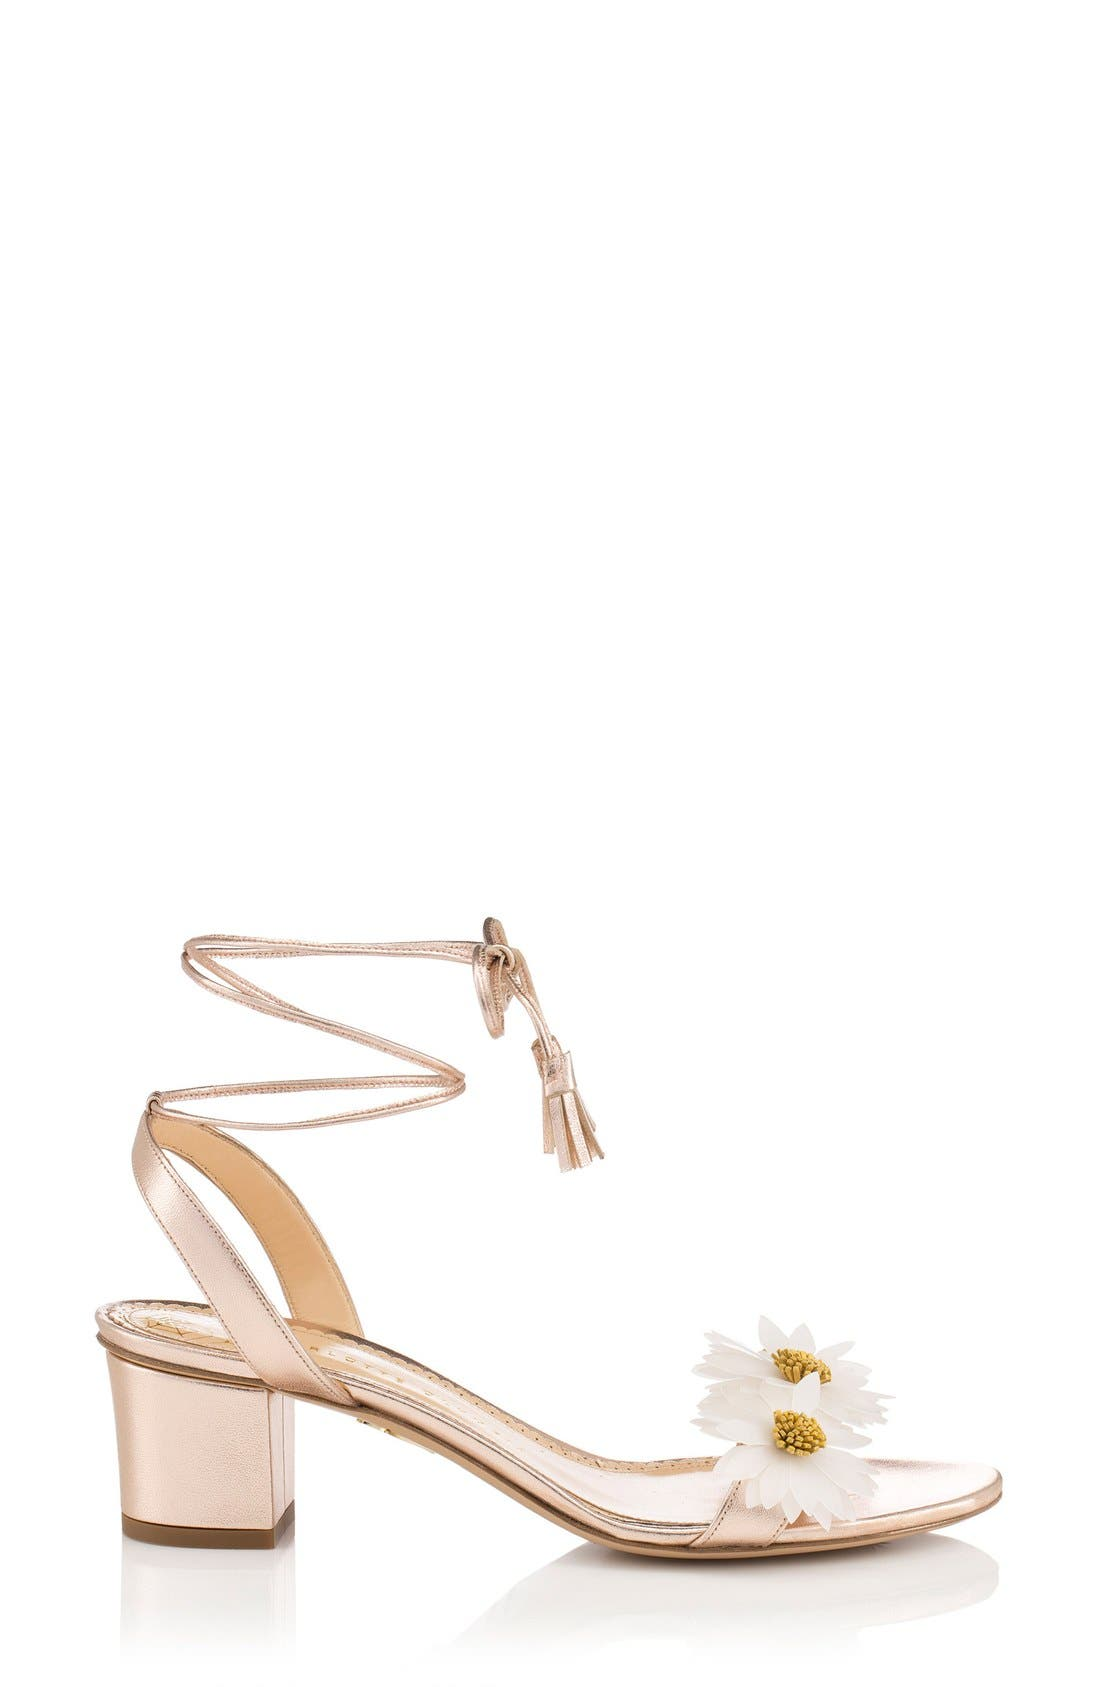 Alternate Image 1 Selected - Charlotte Olympia Tara Lace-Up Sandal (Women)